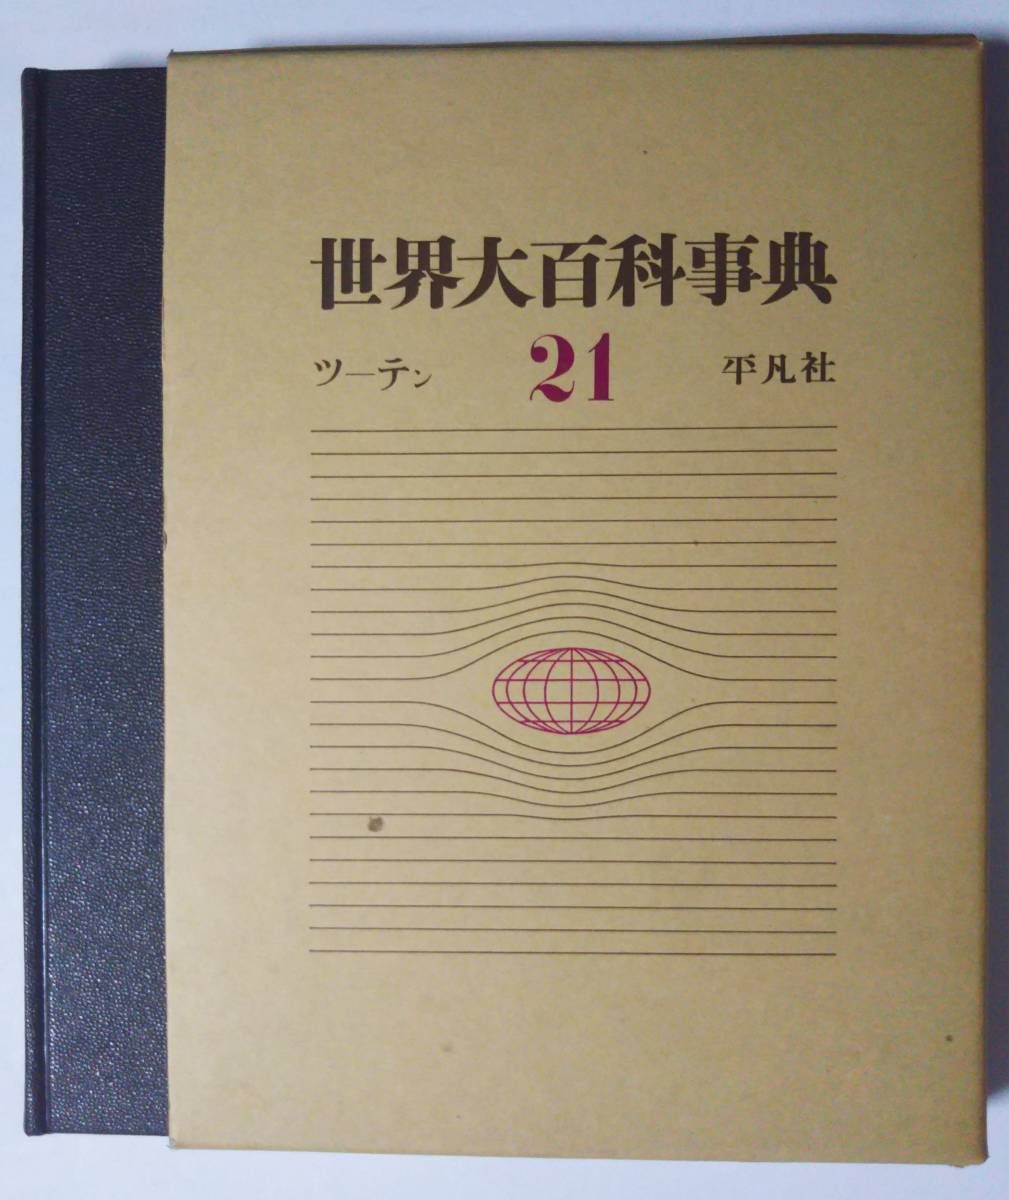 Heibonsha World Encyclopedia 21(Sport TV) 1972 first edition issued box there/Beauty Products size: 22.5×31㎝ approx 2kg